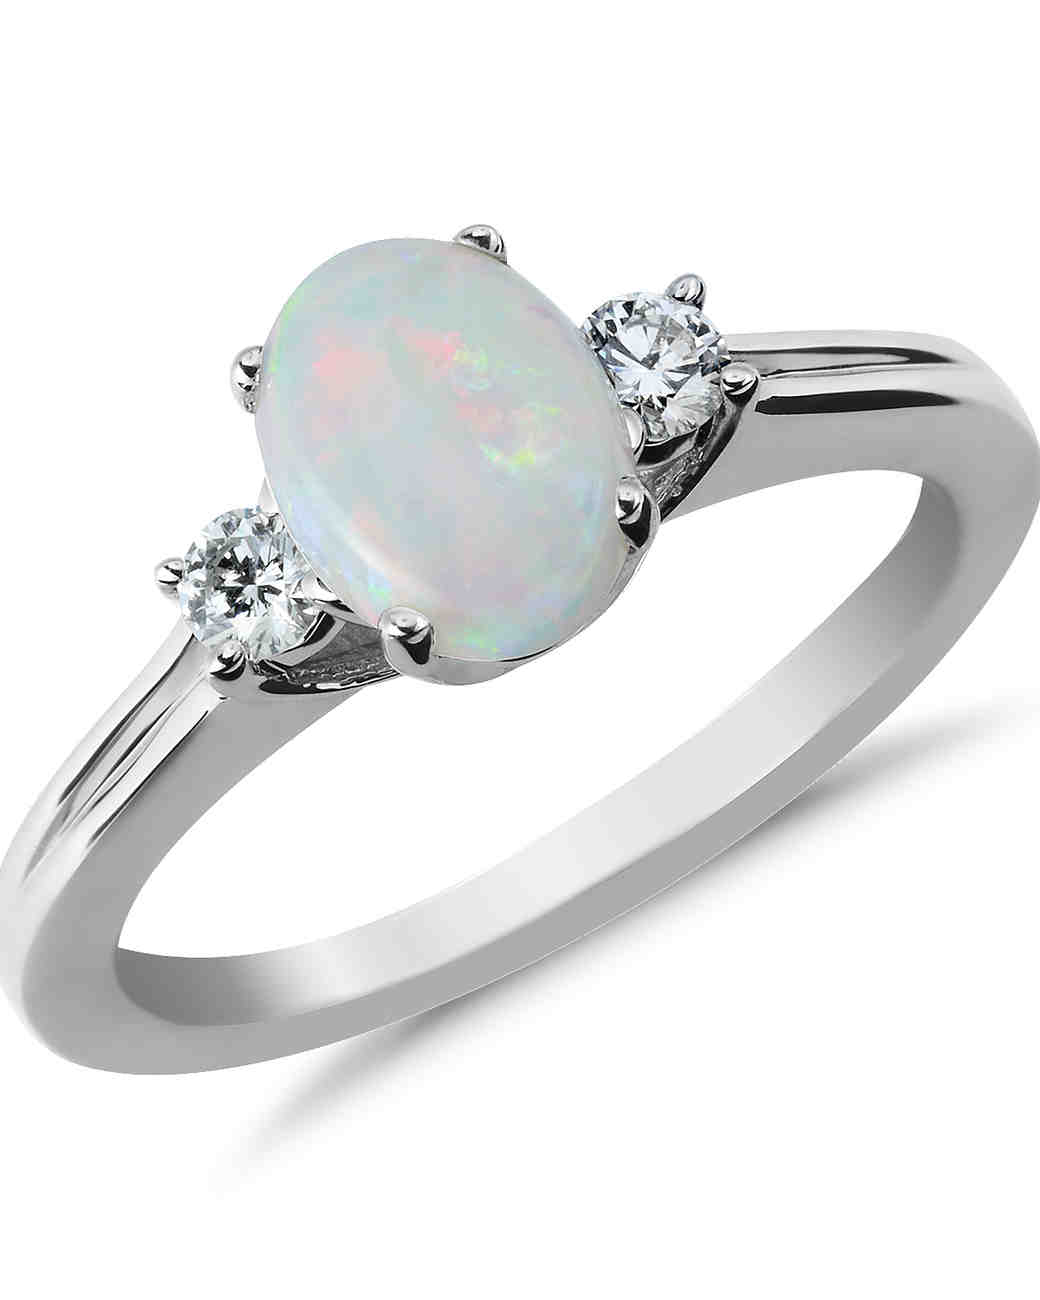 carat ring l dates engagement and cocktail j to the edwardian id jewelry early at rings natural diamond this century opal modelled sublime